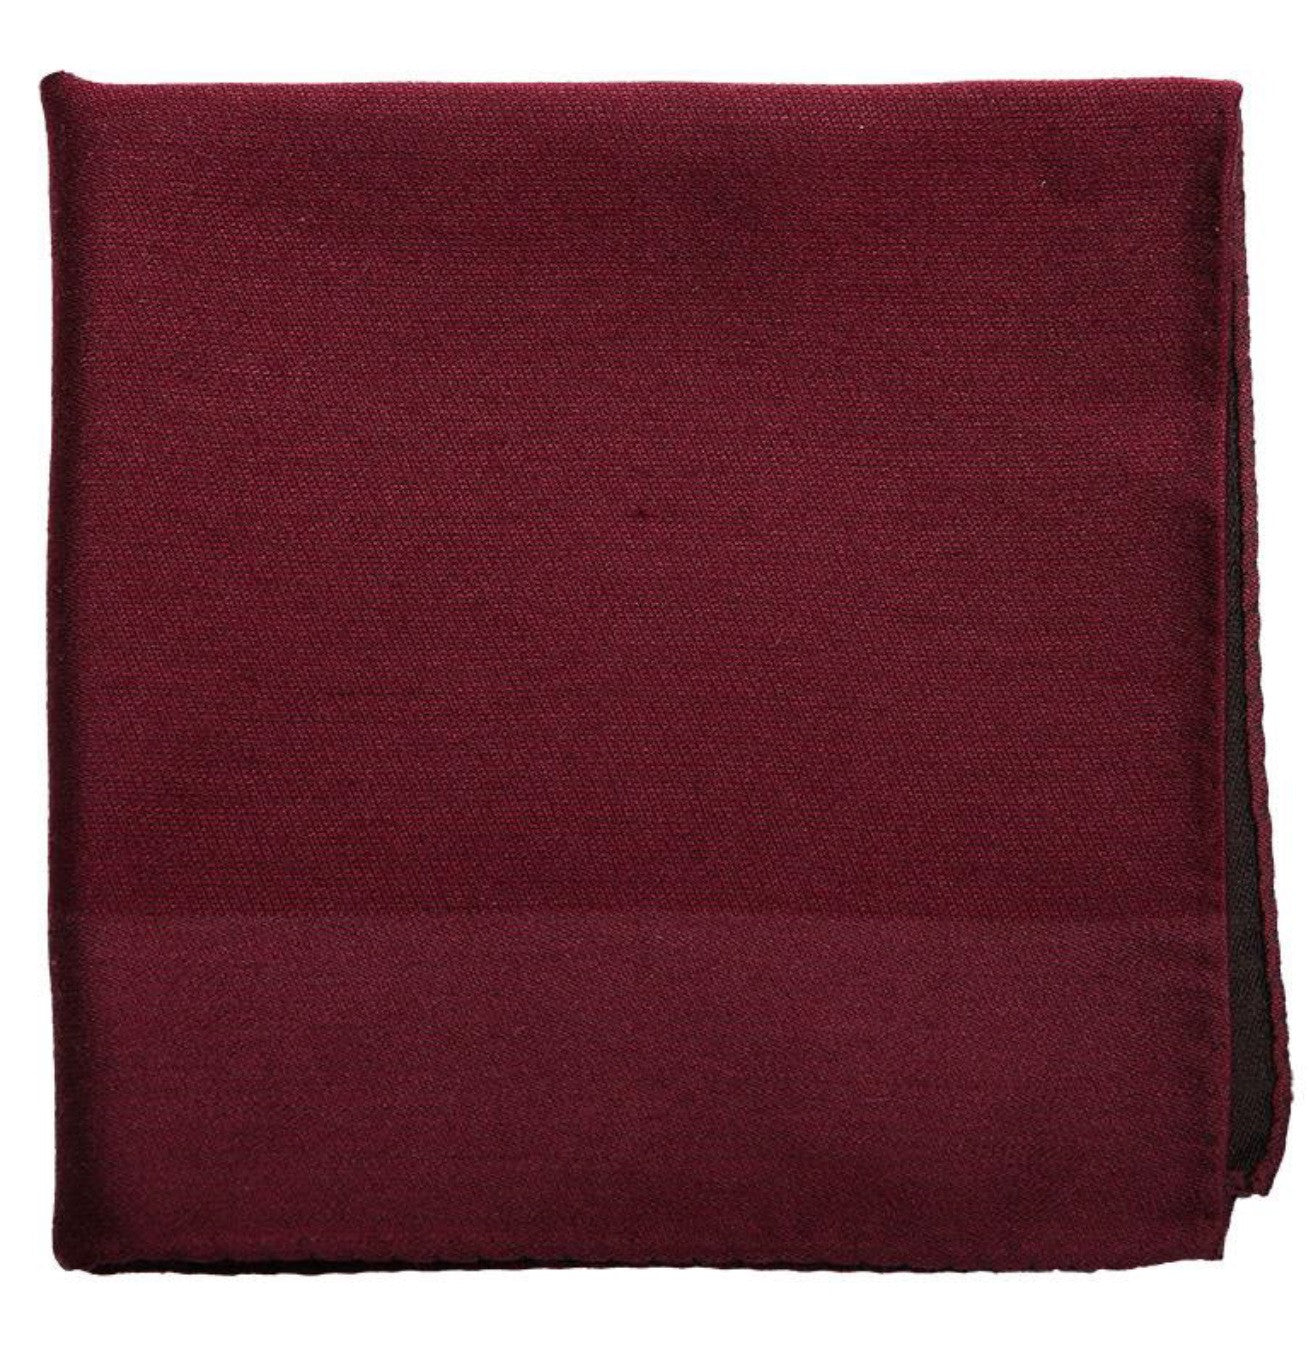 Burgundy Mulberry Silk/ Wool Pocket Square - DV Clothiers - The Best Custom Mens Suits In Vancouver